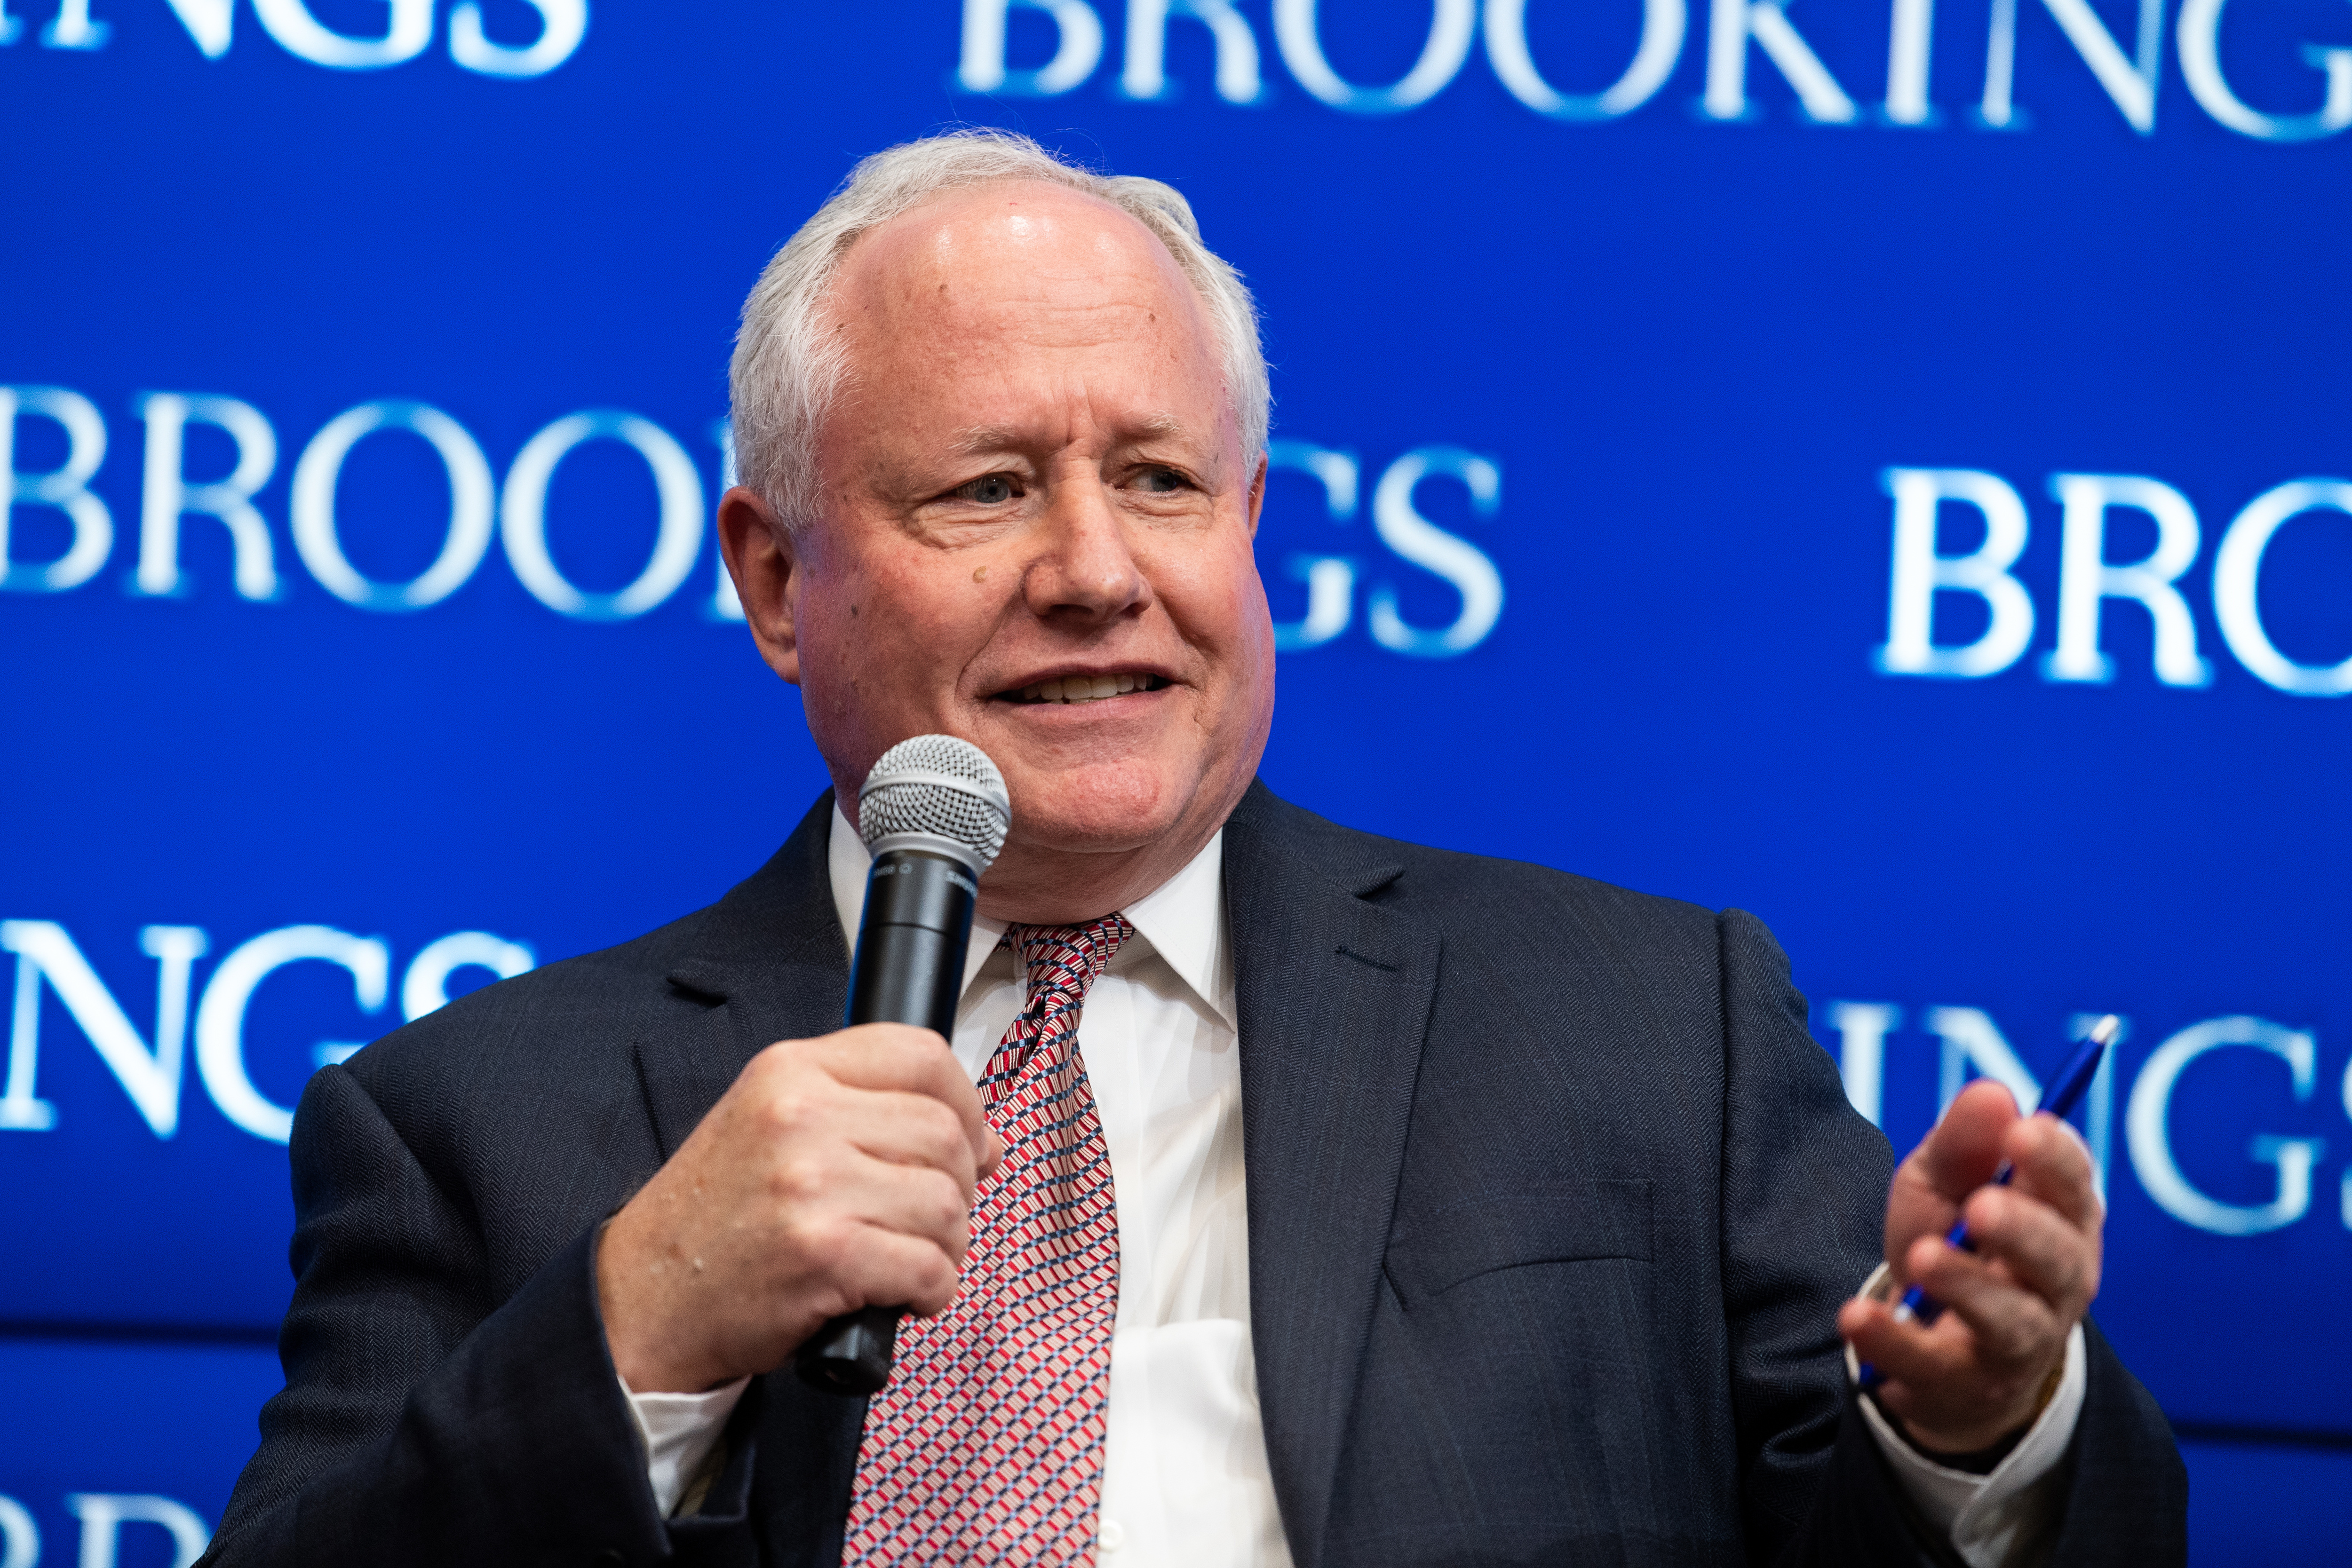 The Weekly Standard, a conservative magazine critical of Trump, is officially shutting down